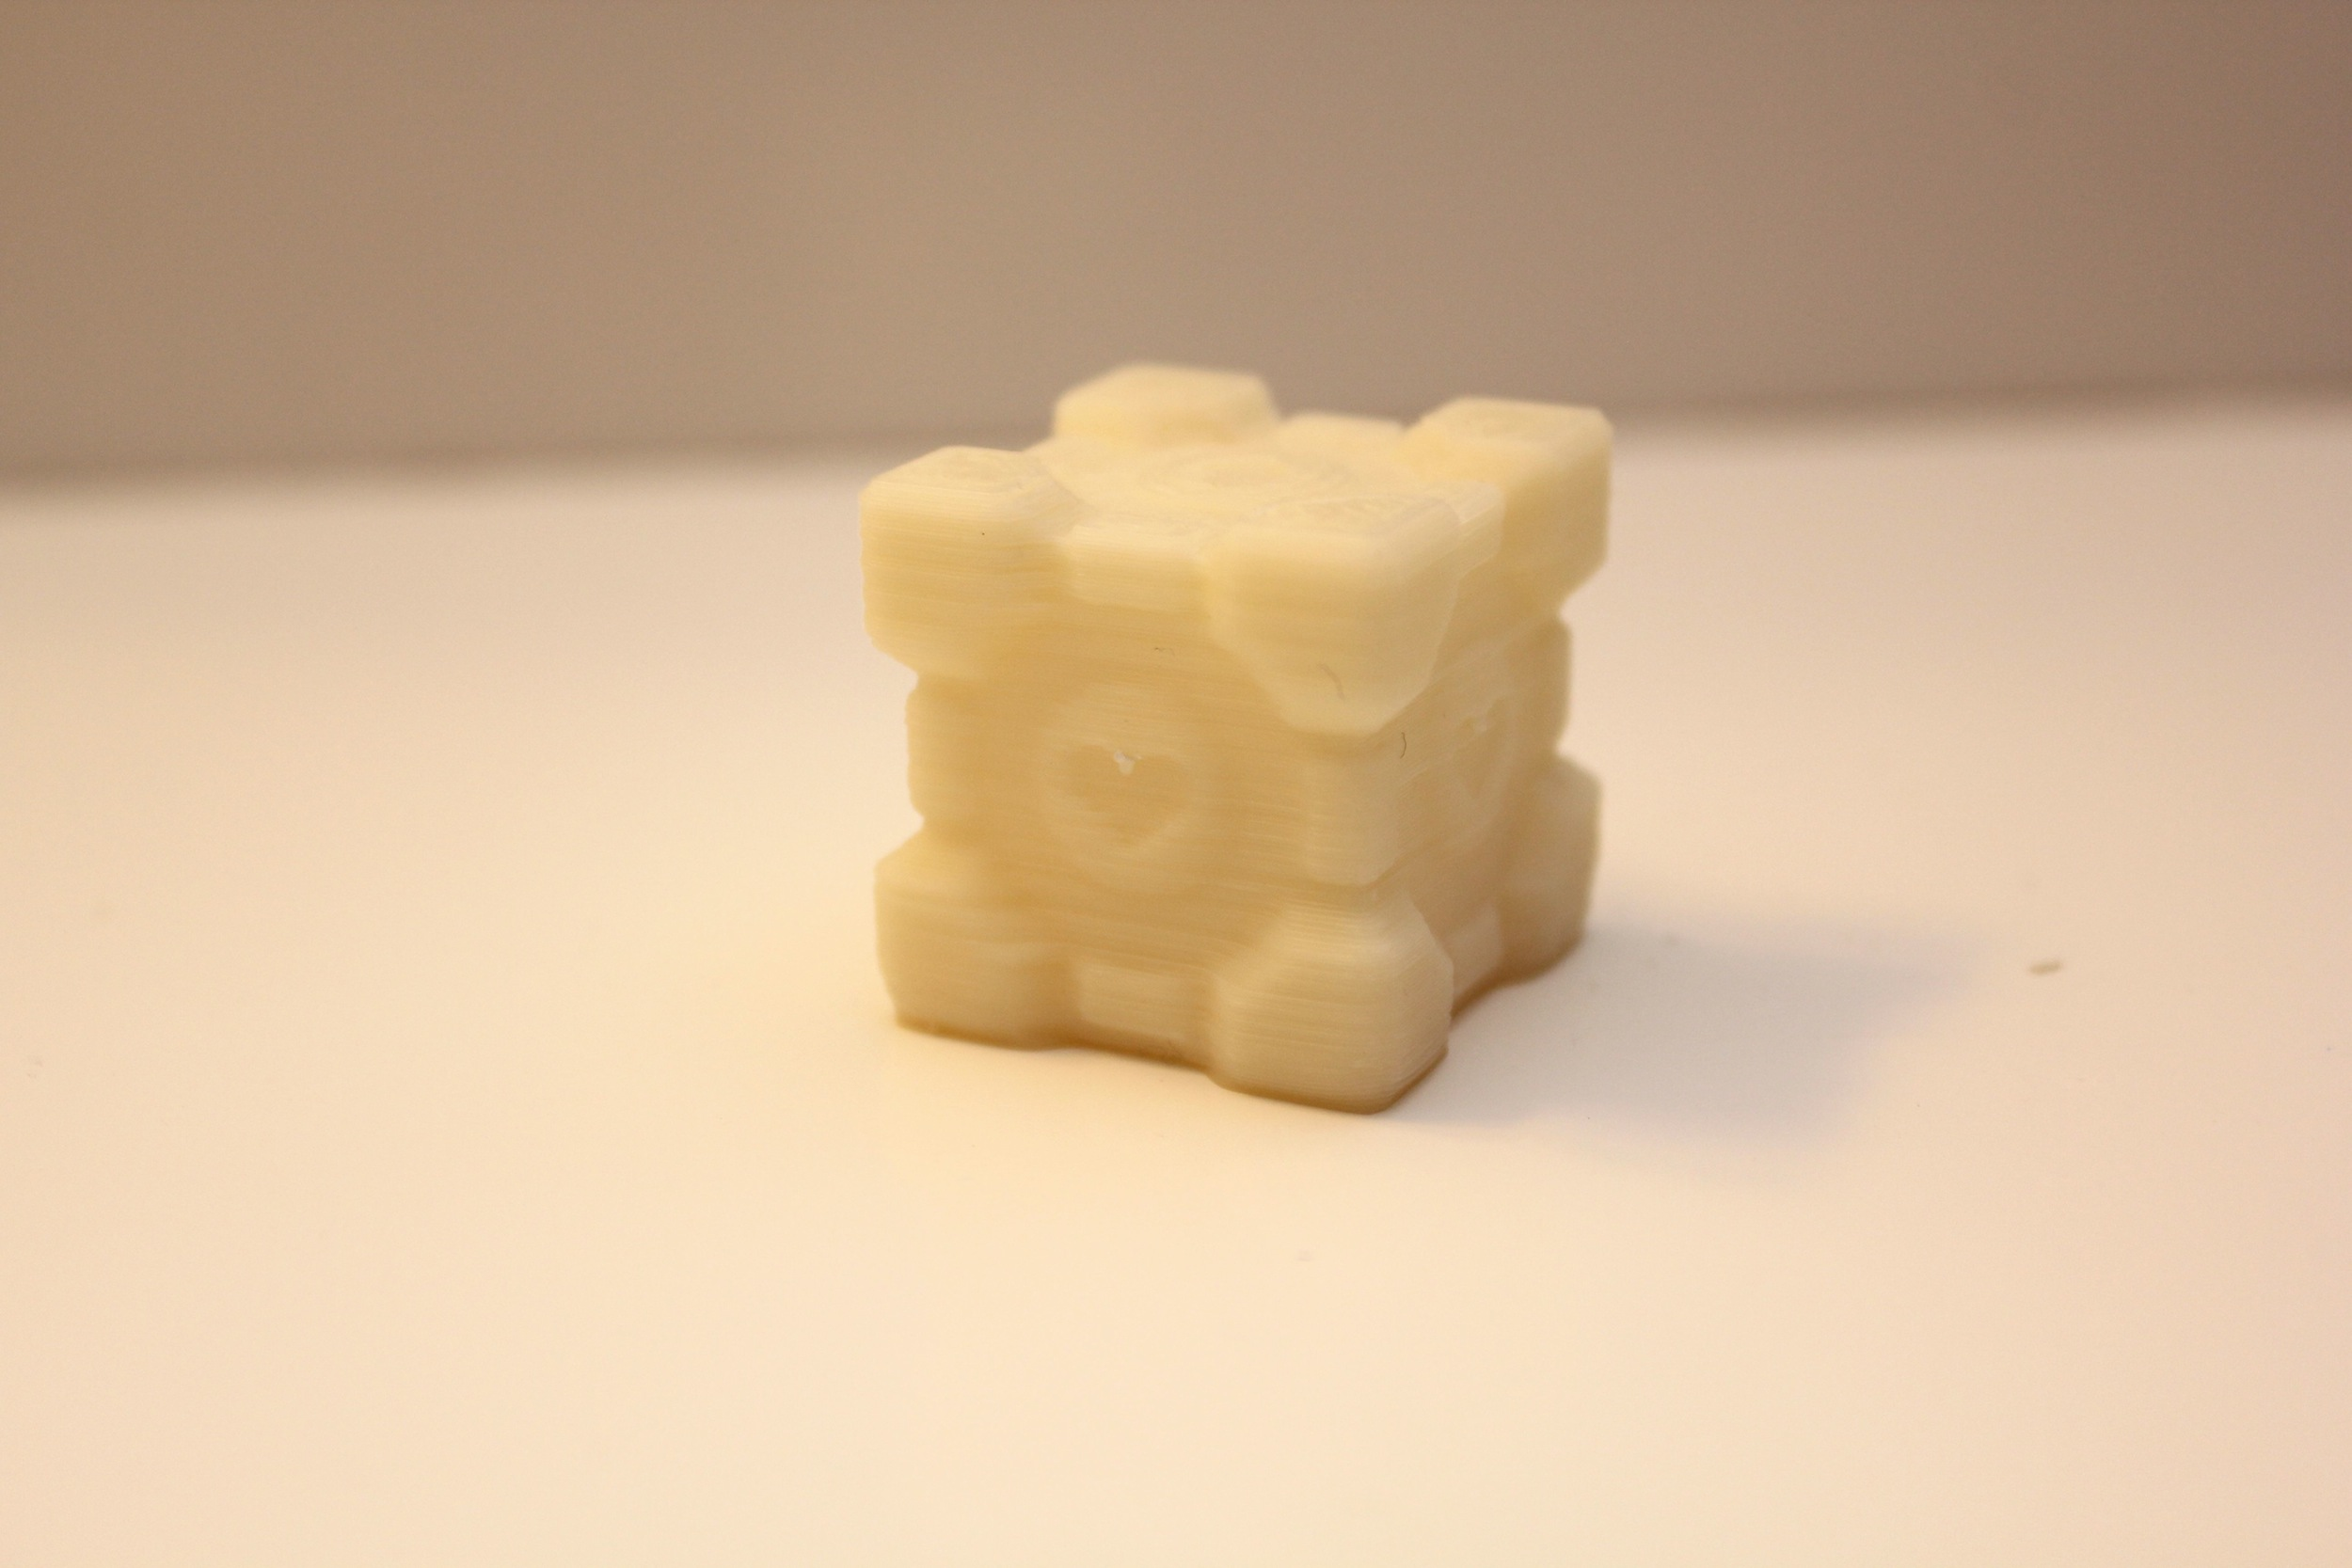 Companion Cube printed with 0.2mm layer thickness